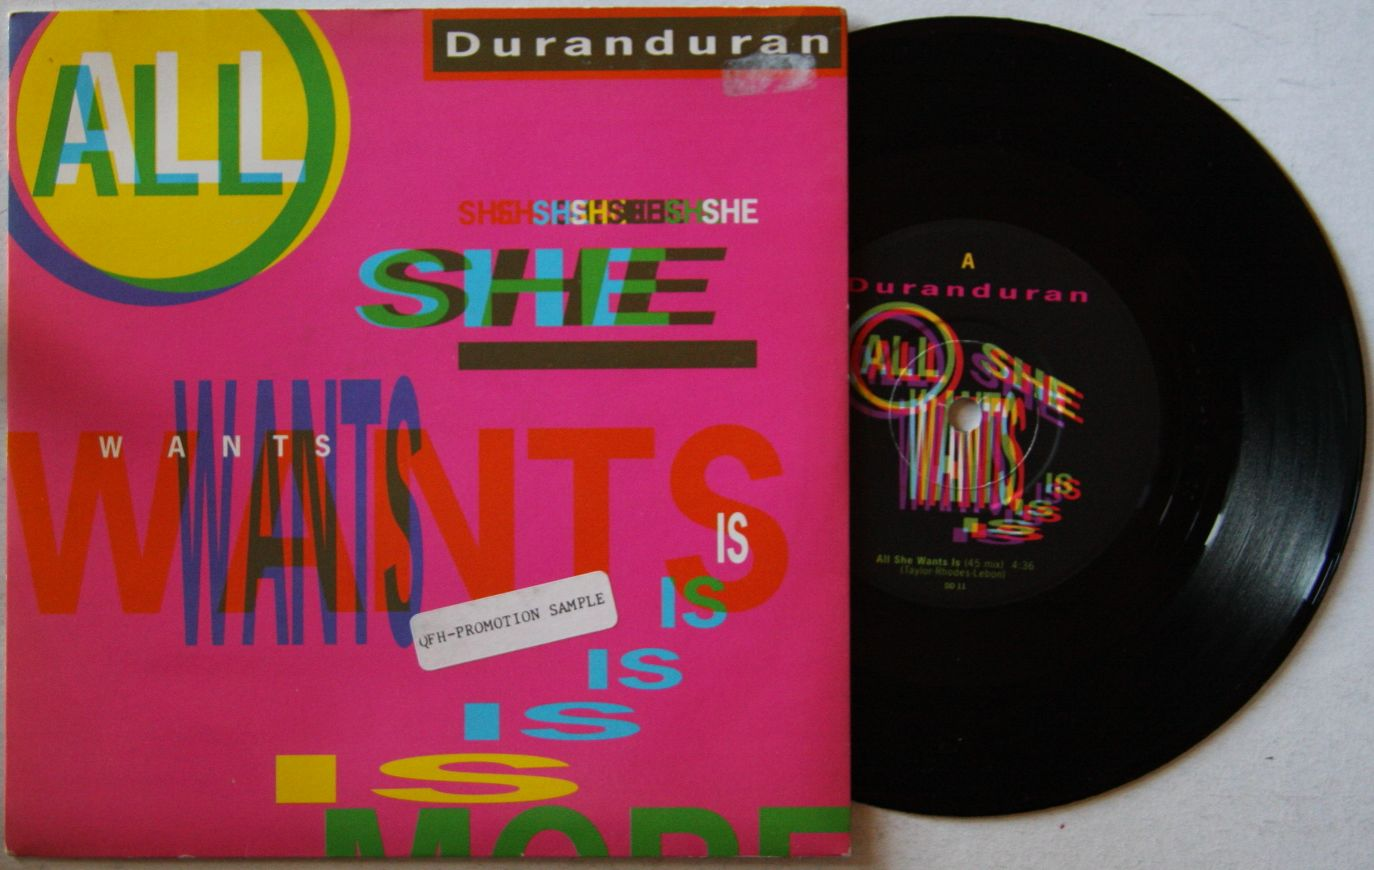 All She Wants - Duran Duran